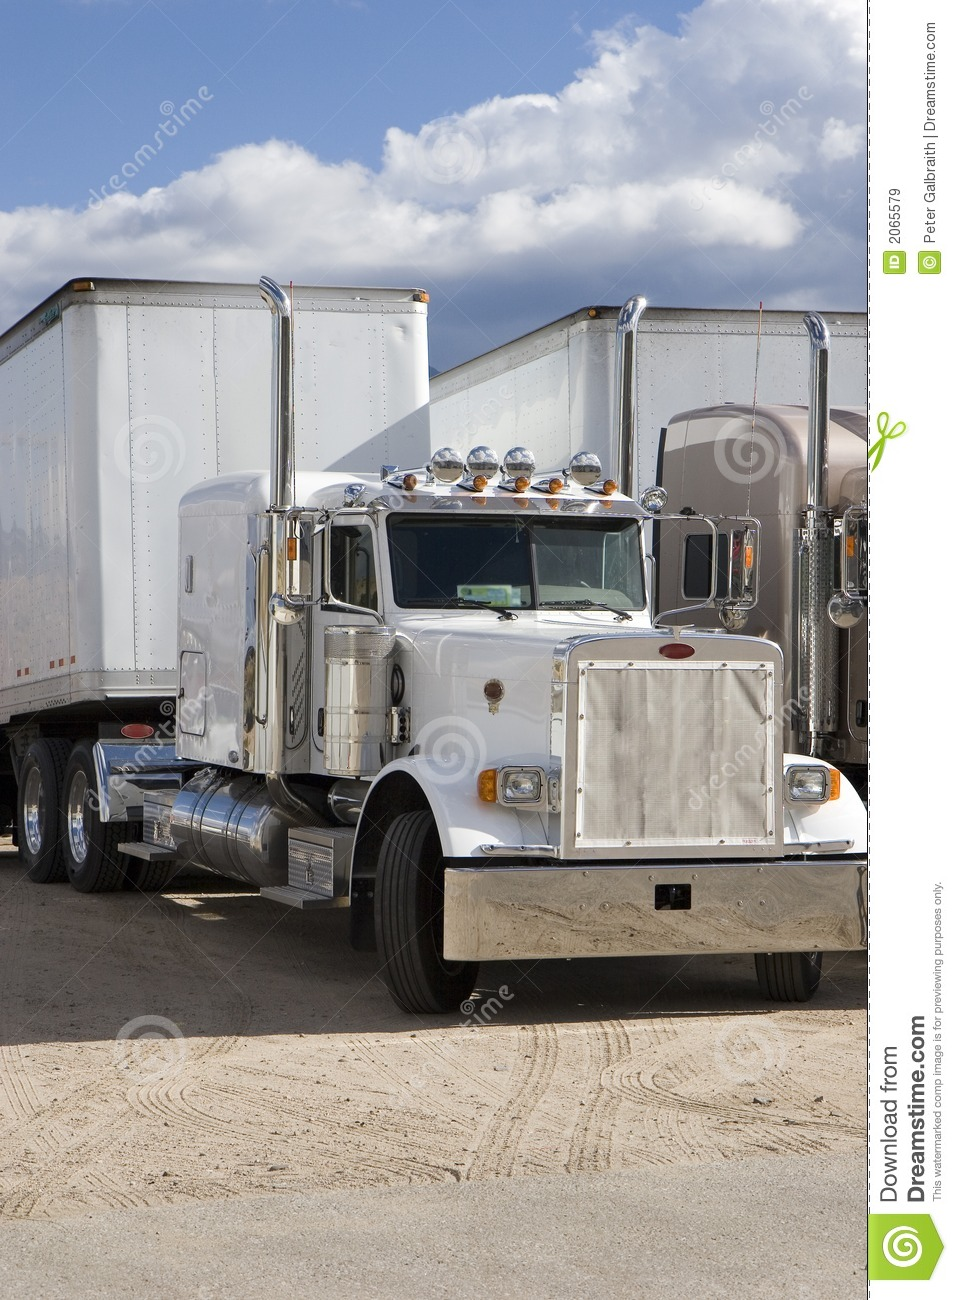 Download Rigs in a row stock image. Image of breaker, wheels, white - 2065579